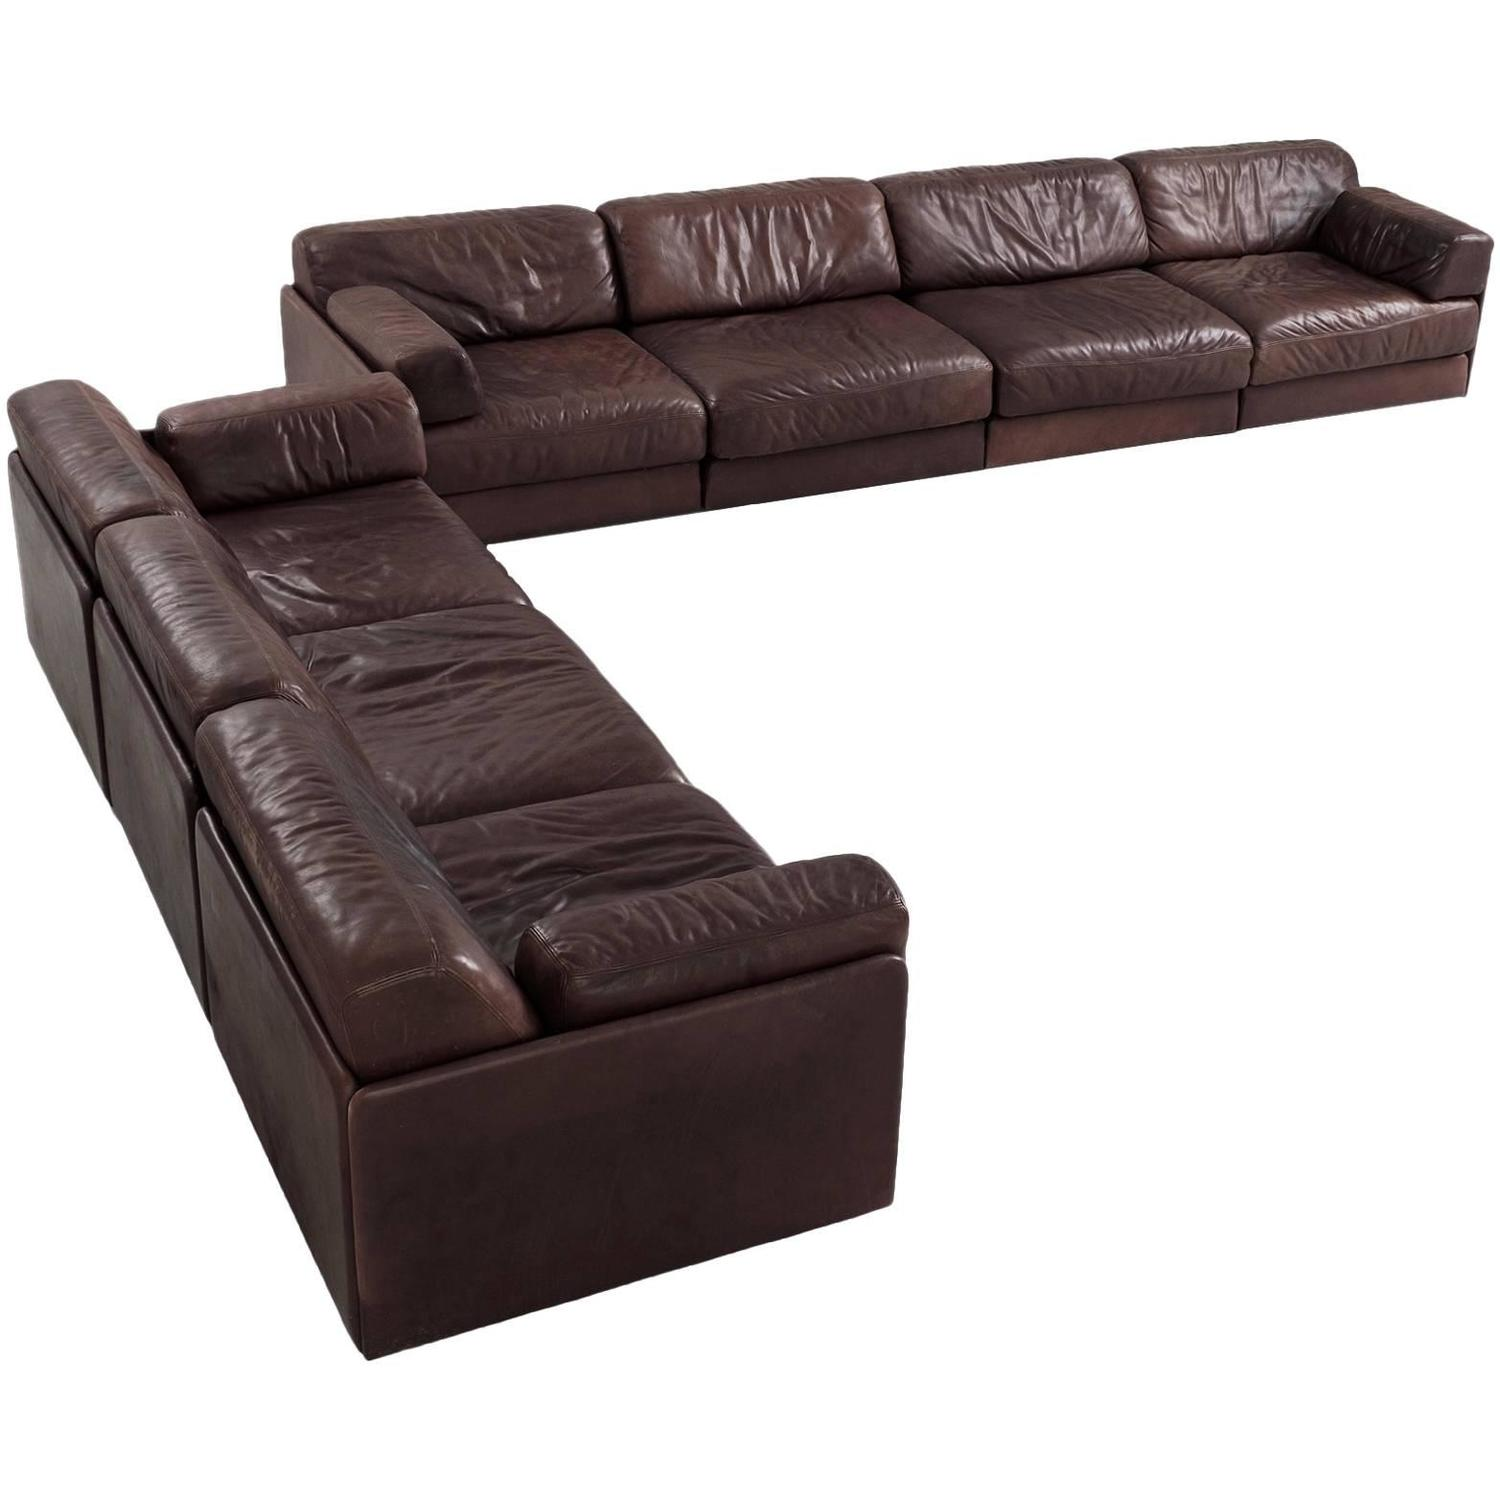 de sede ds 76 modular sofa in dark brown leather for sale. Black Bedroom Furniture Sets. Home Design Ideas